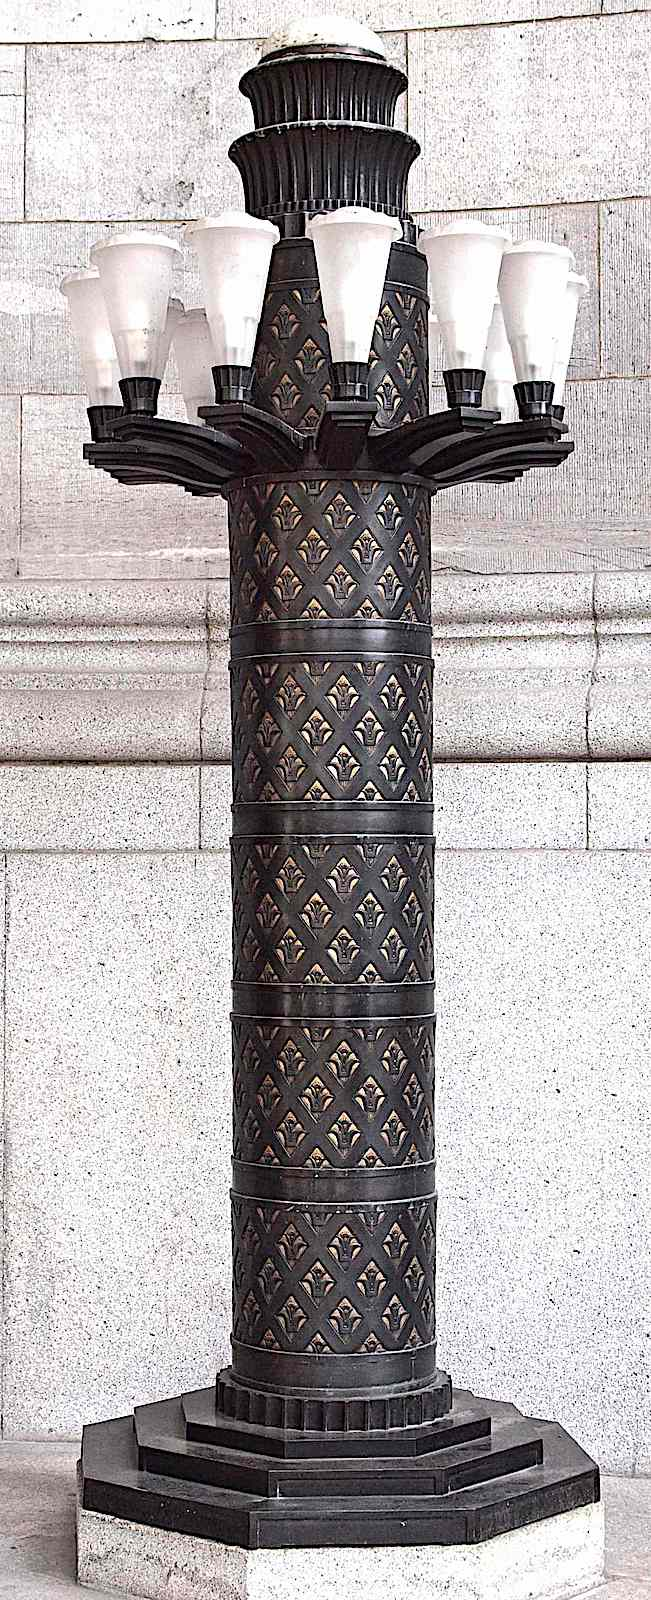 a color photograph of an Edgar Brandt electric light post